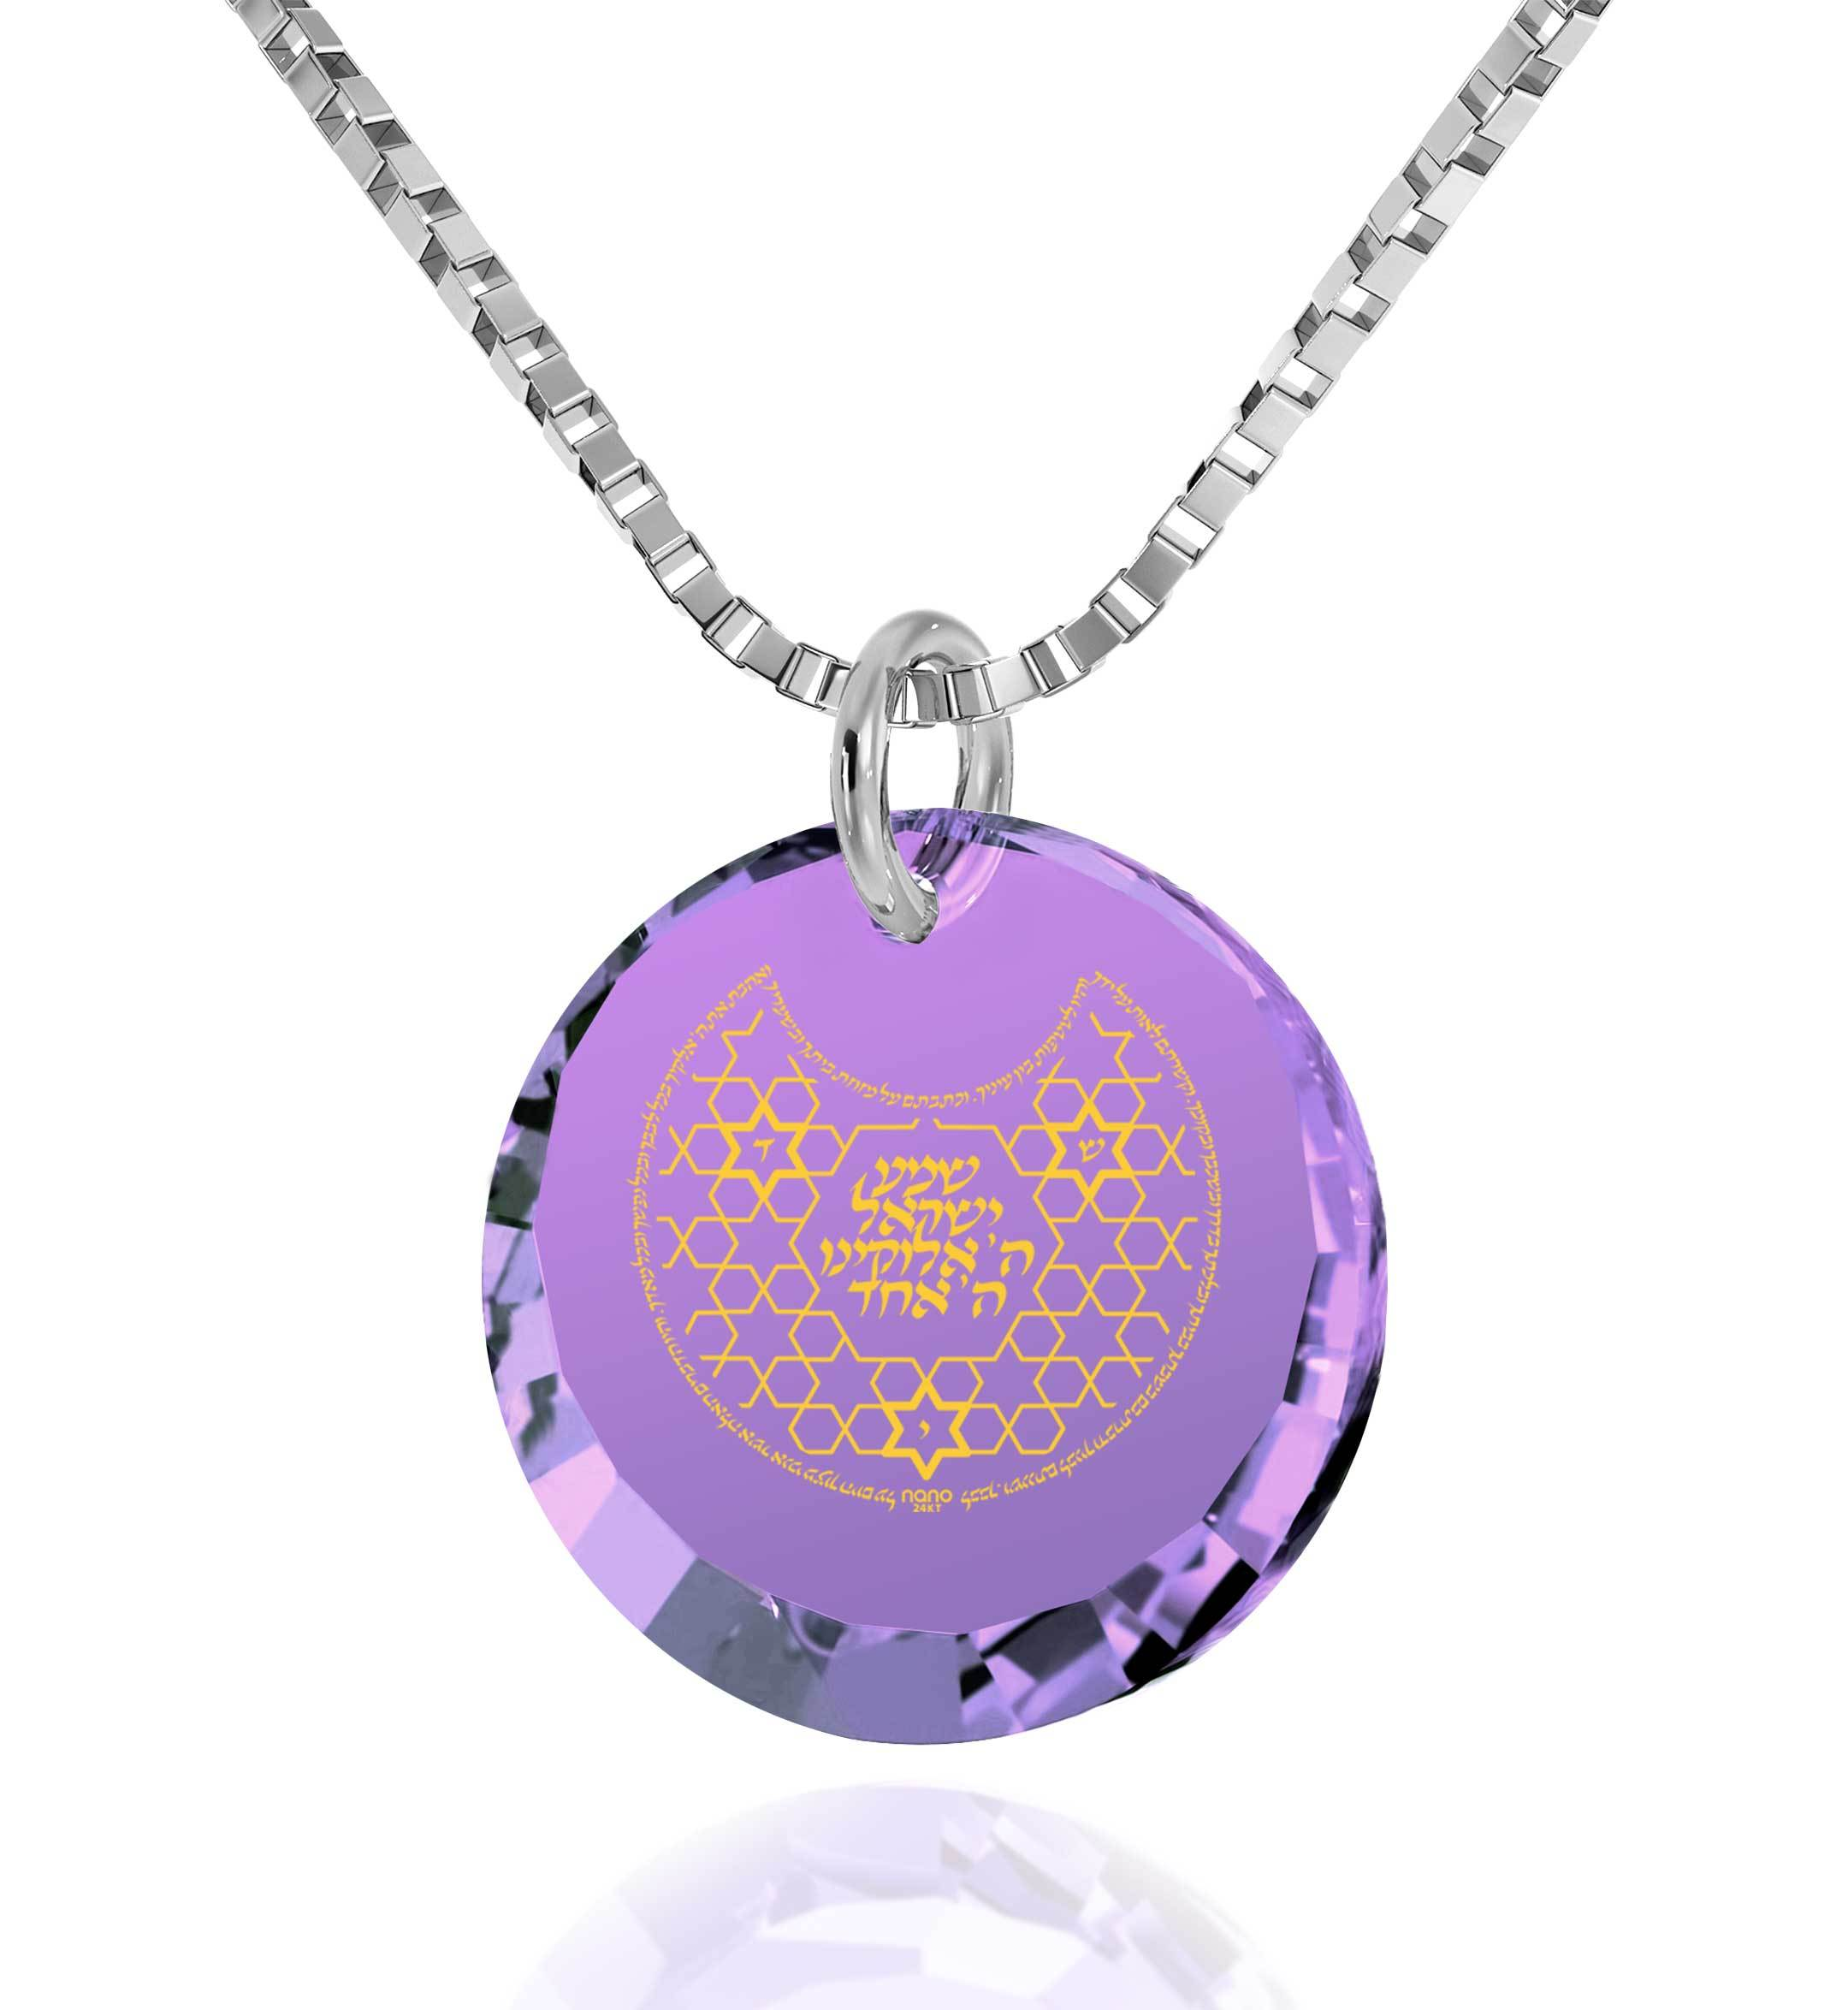 """Shema Yisrael"" Engraved in 24k, Judaica Jewelry with Purple Stone, Israeli Jewelry Designer"